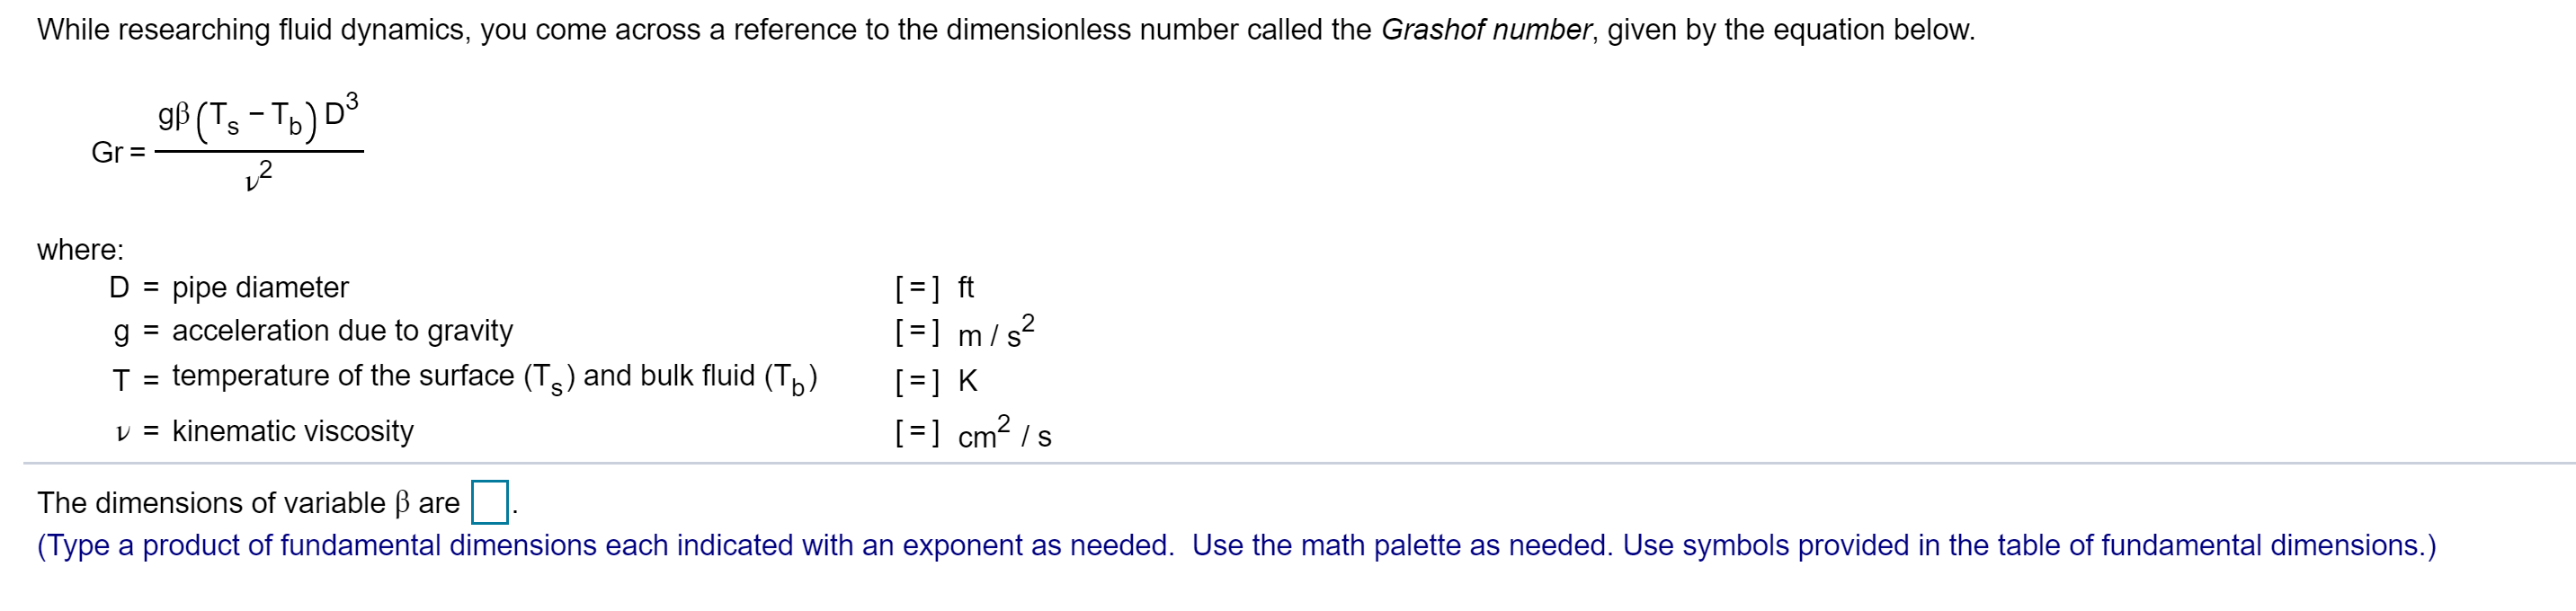 While researching fluid dynamics, you come across a reference to the dimensionless number called the Grashof number, given by the equation below. gf (T,-To) D S Gr = where: ] ft ]m/ s D pipe diameter acceleration due to gravity g temperature of the surface (Ts) and bulk fluid (T) T K cm2 s v = kinematic viscosity The dimensions of variable B are (Type a product of fundamental dimensions each indicated with an exponent as needed. Use the math palette as needed. Use symbols provided in the table of fundamental dimensions.)